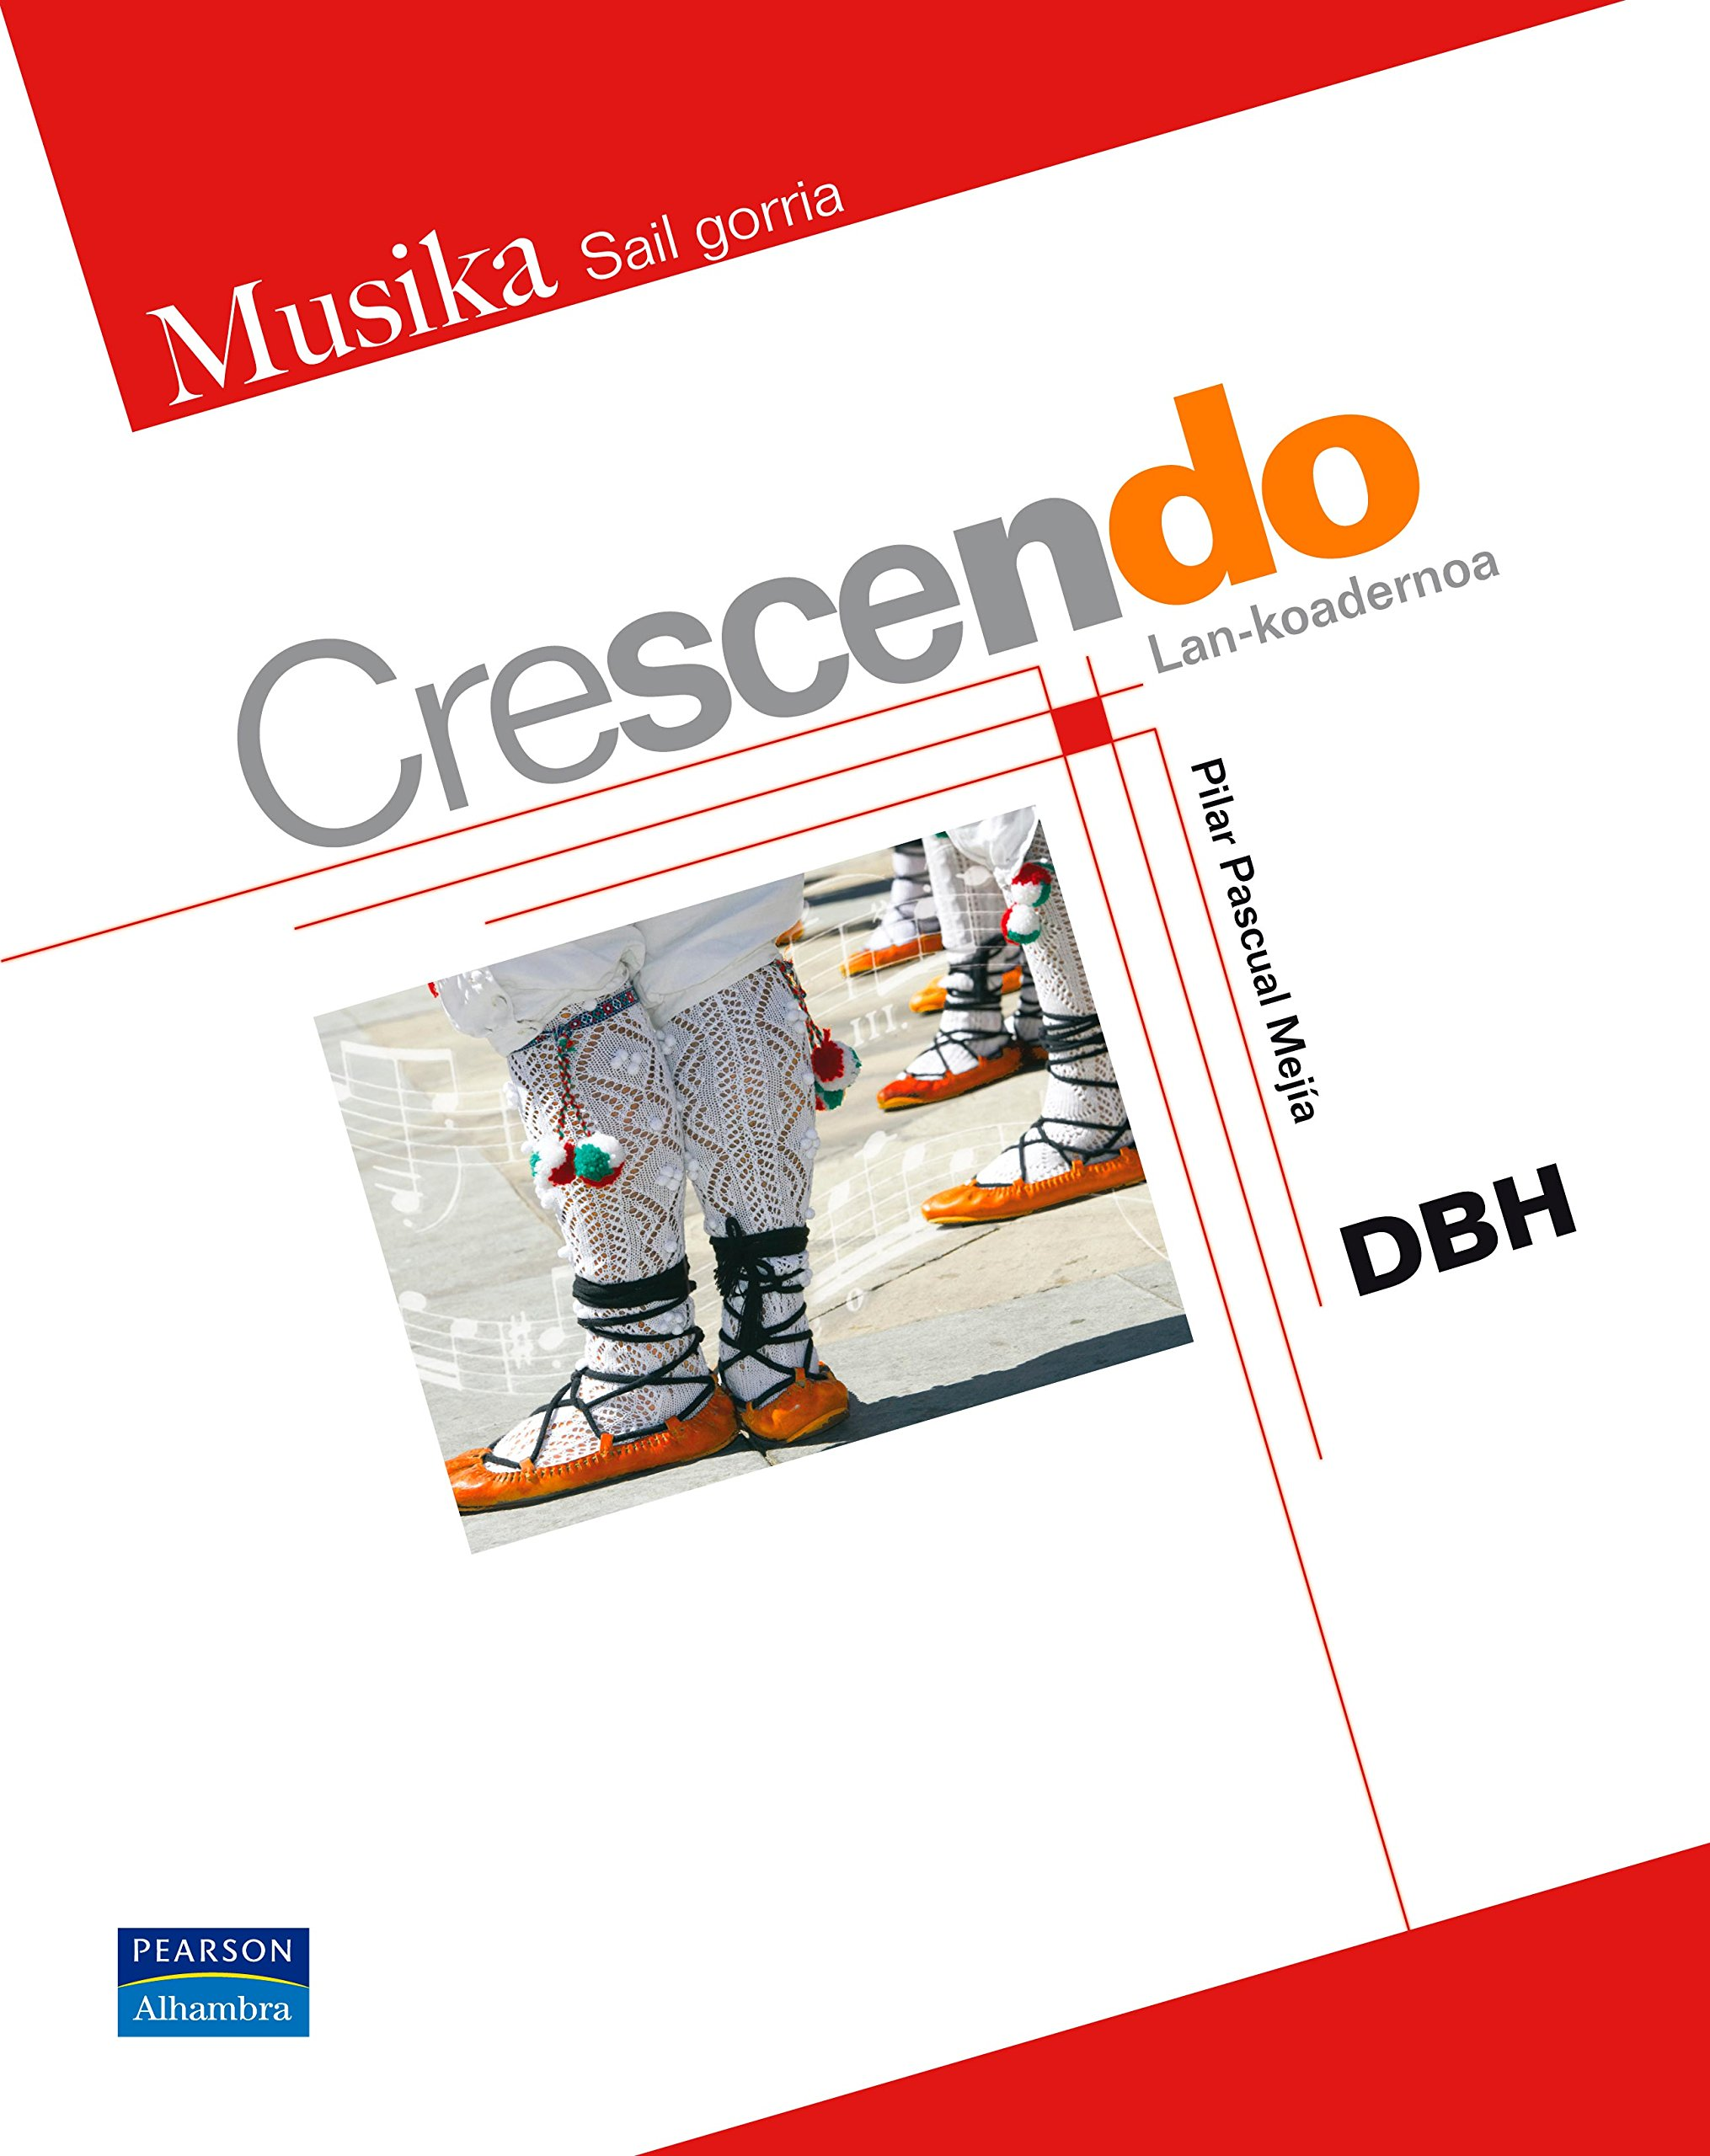 Crescendo lankoadernoa - 9788420553115: Amazon.es: Pilar ...